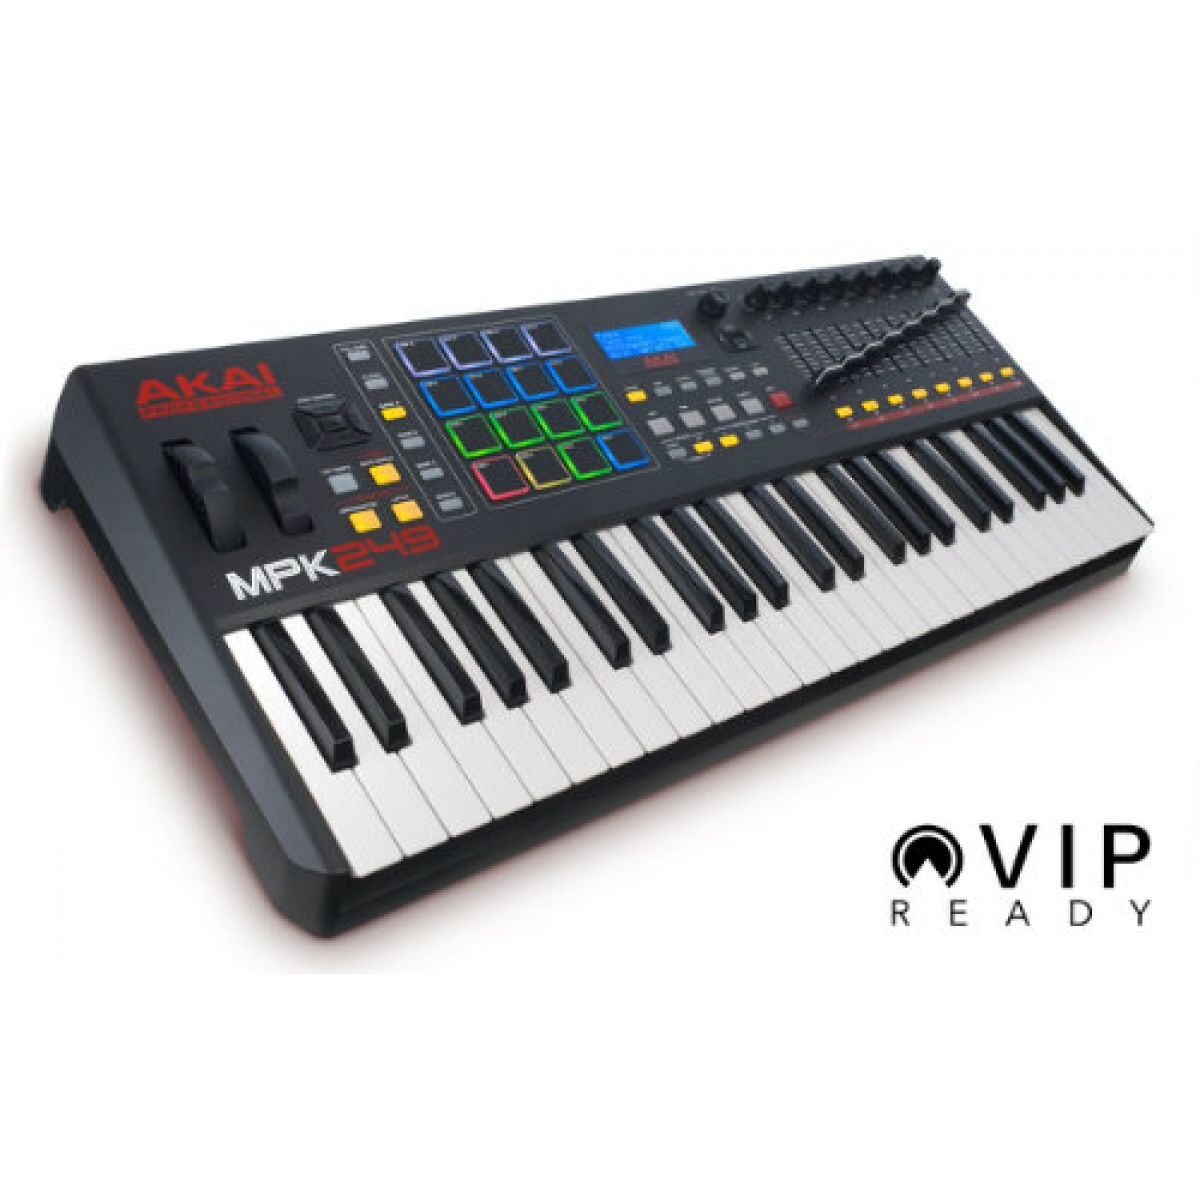 Midi Controller Software For Live Performance : akai mpk249 performance keyboard controller for vip at promenade music ~ Russianpoet.info Haus und Dekorationen